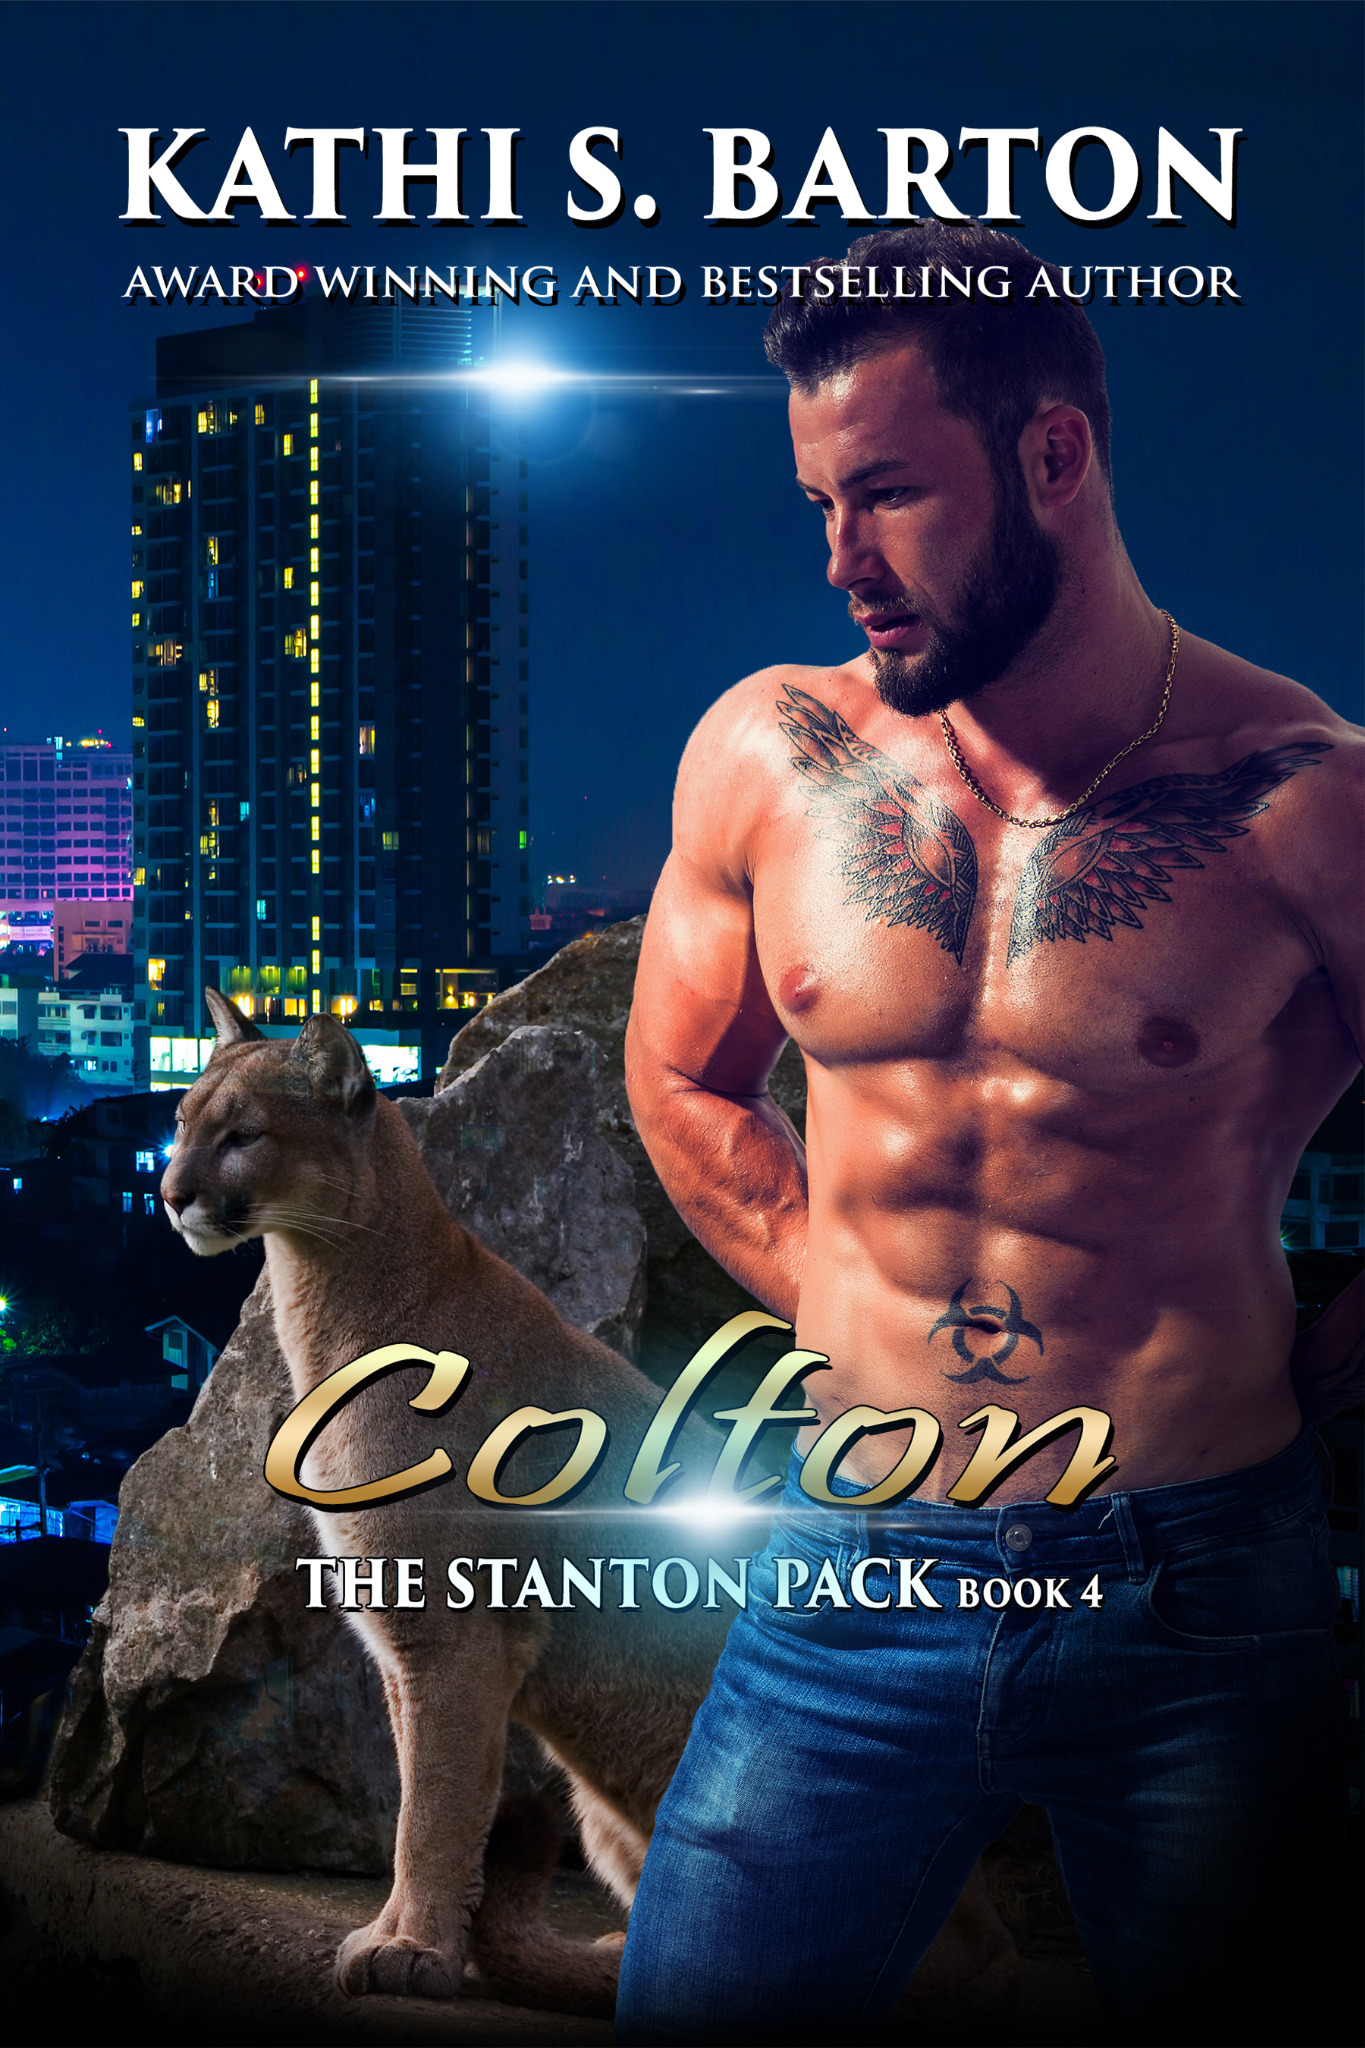 Colton - The Stanton Pack Book 4